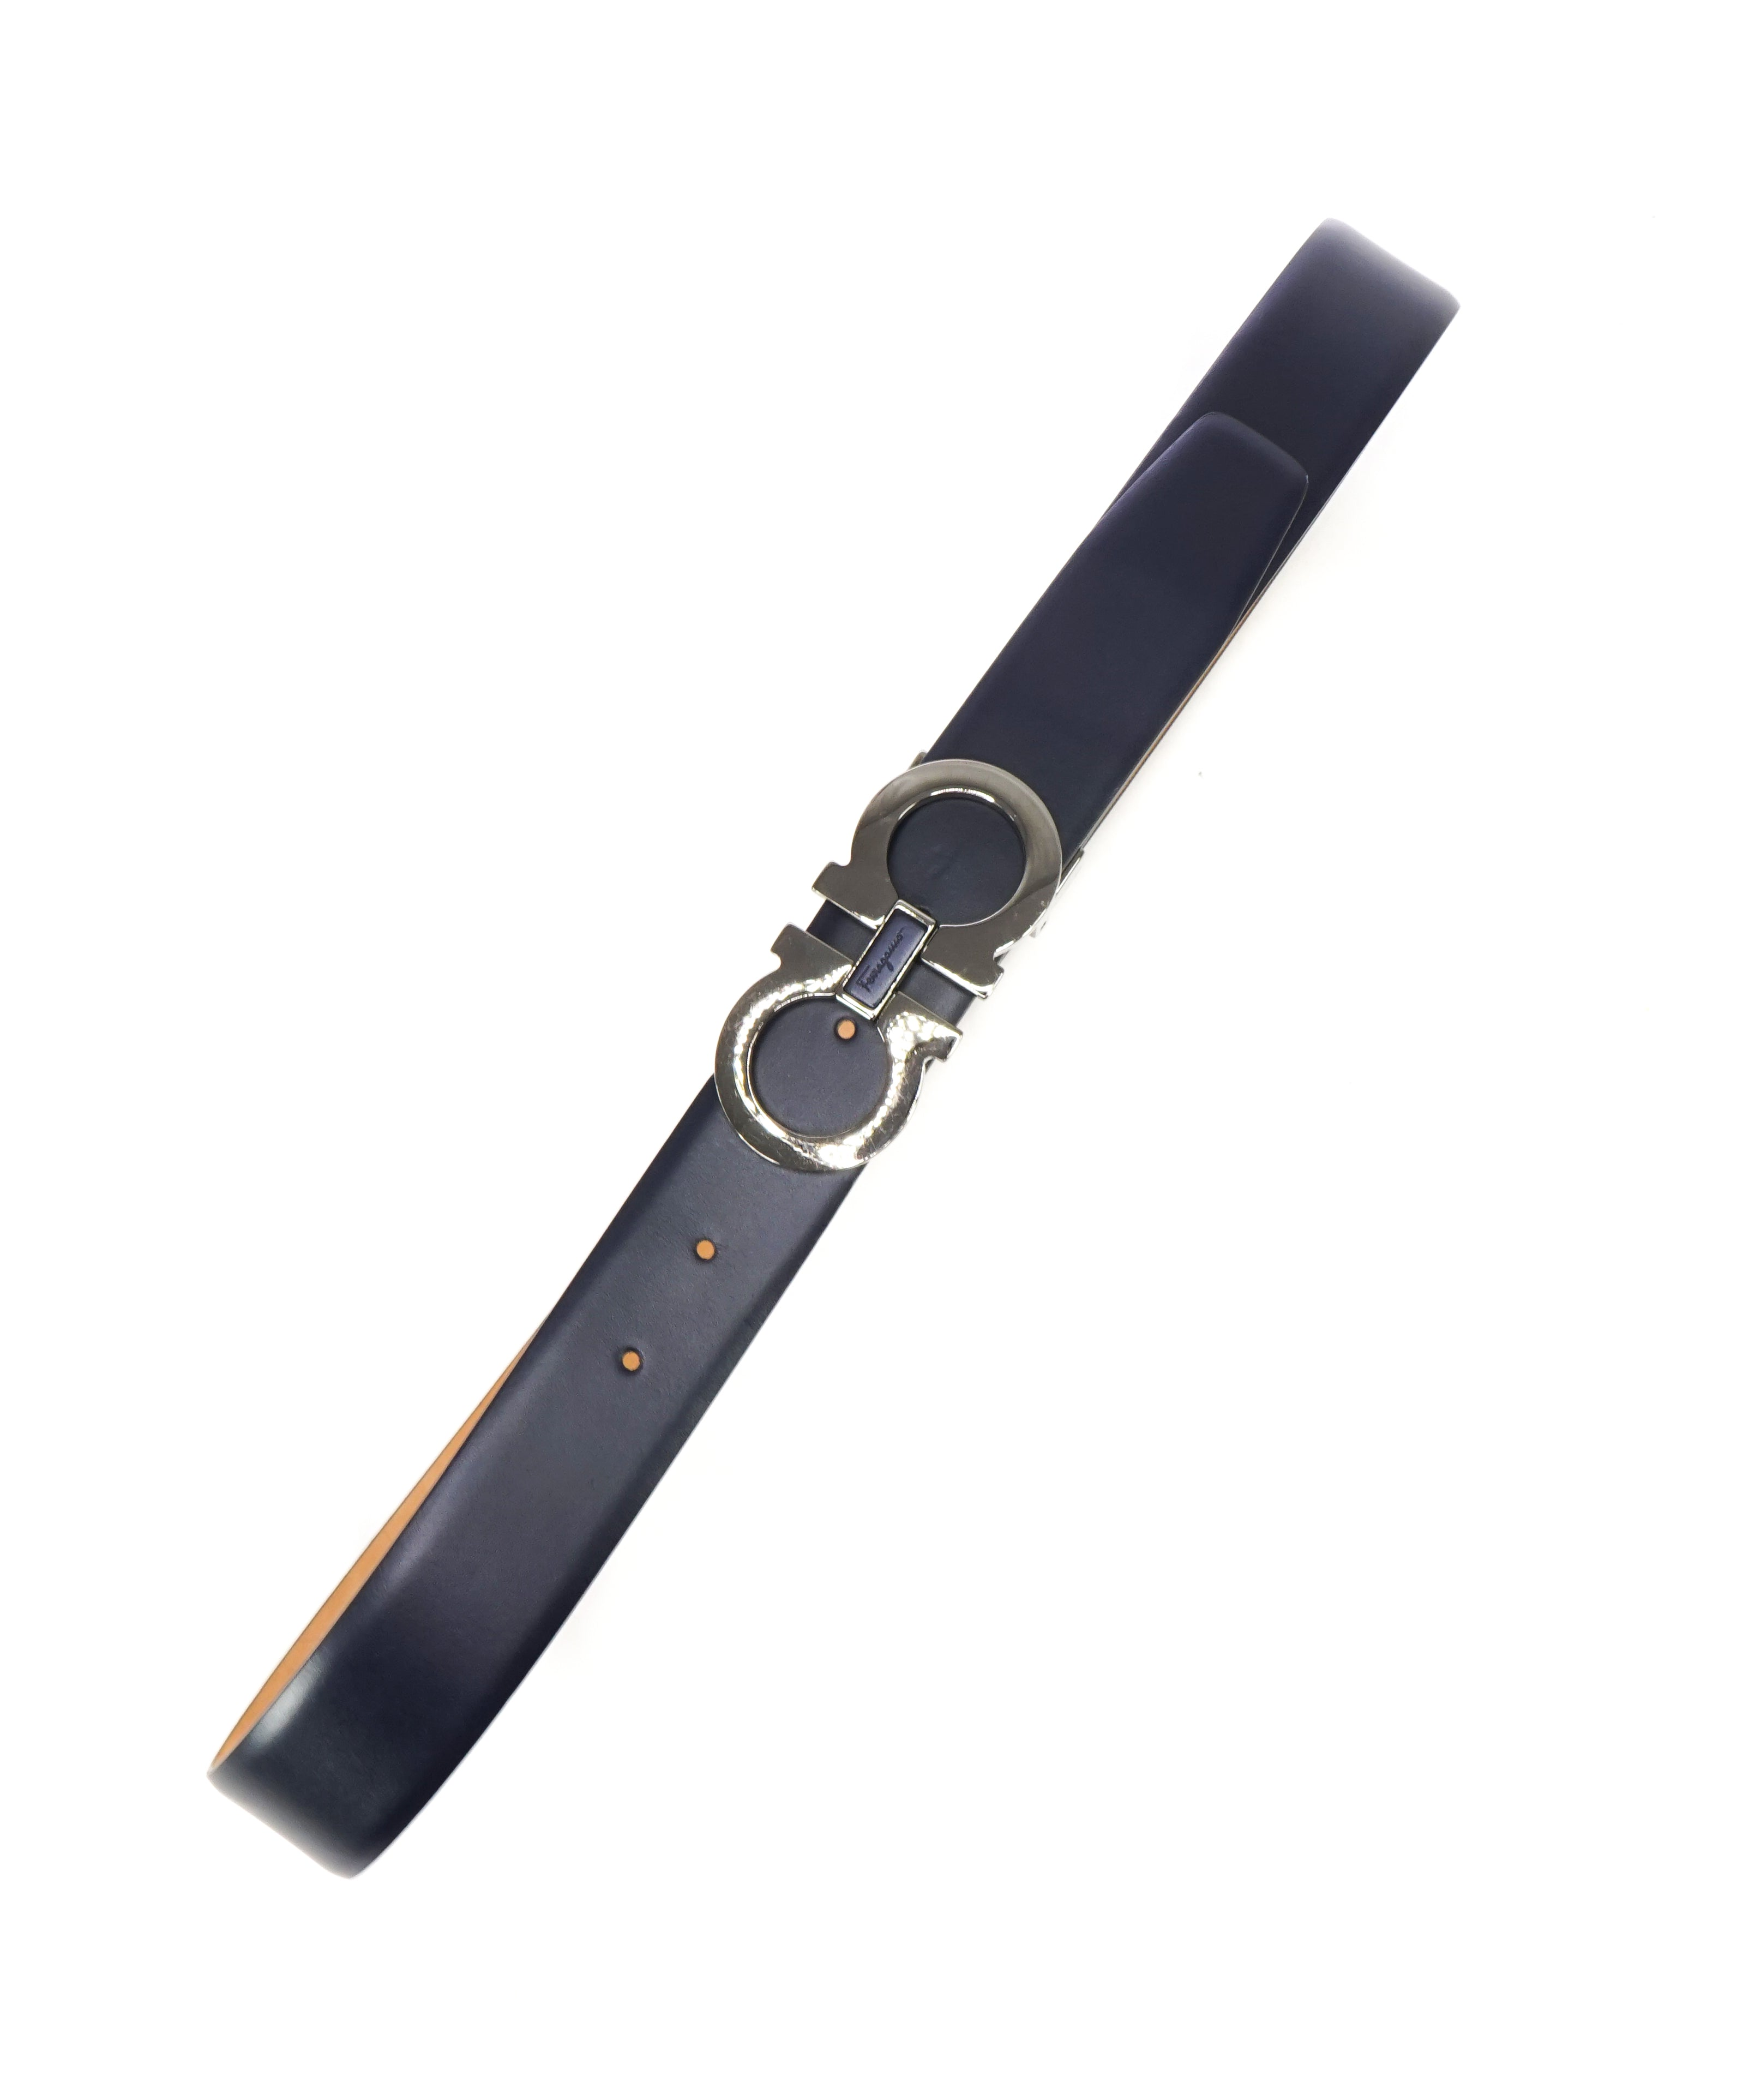 SALVATORE FERRAGAMO - Navy Blue Block Gancini Buckle Leather Belt - 36W